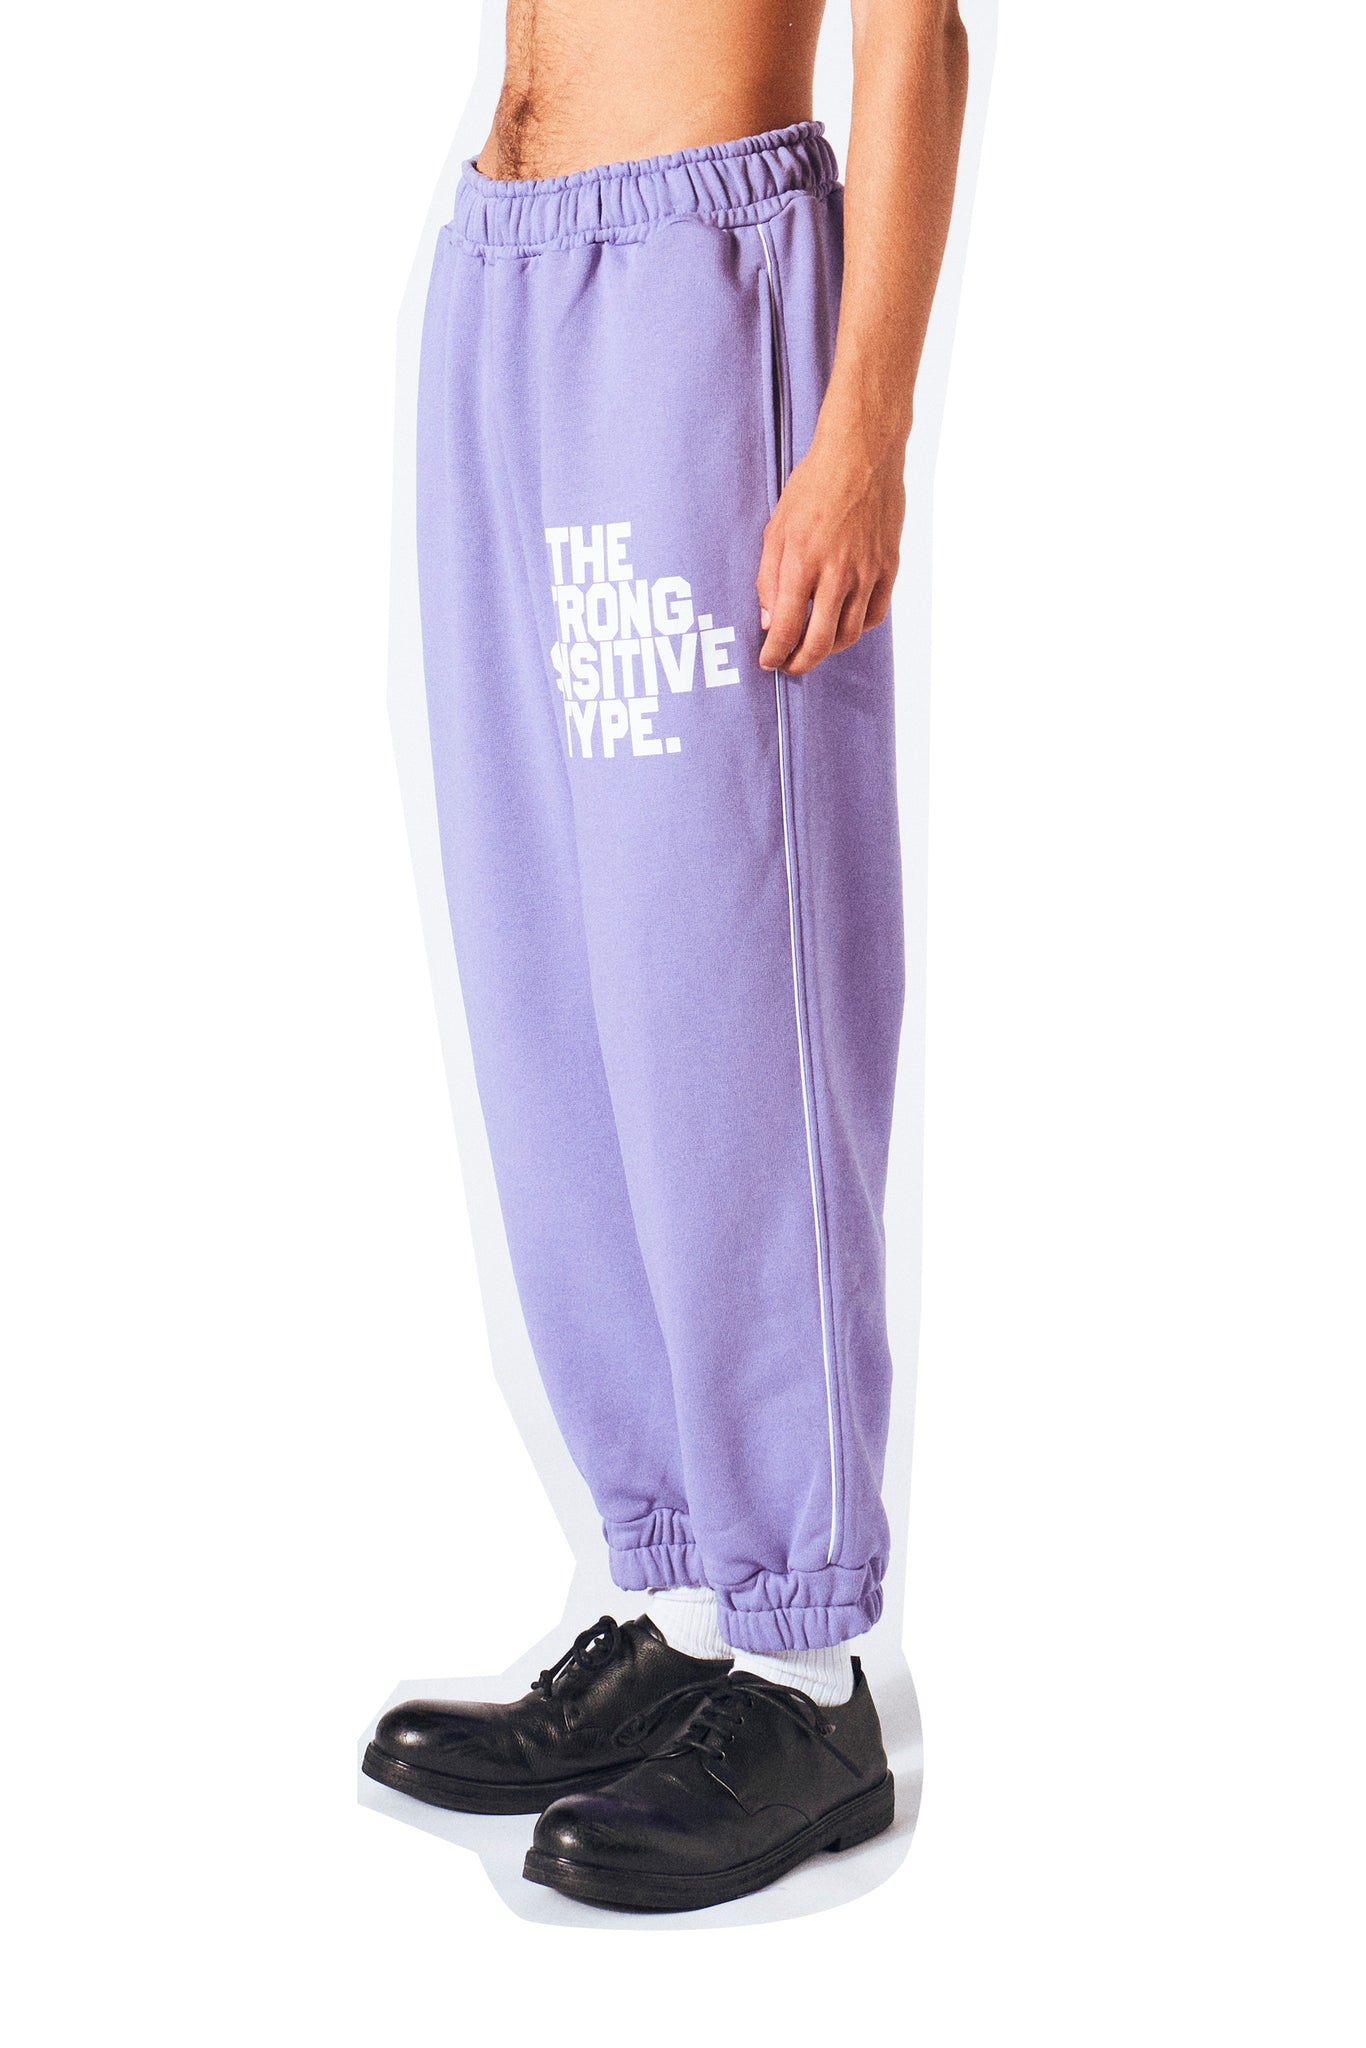 purple sweatpants from Martin Asbjørn the strong sensitive type